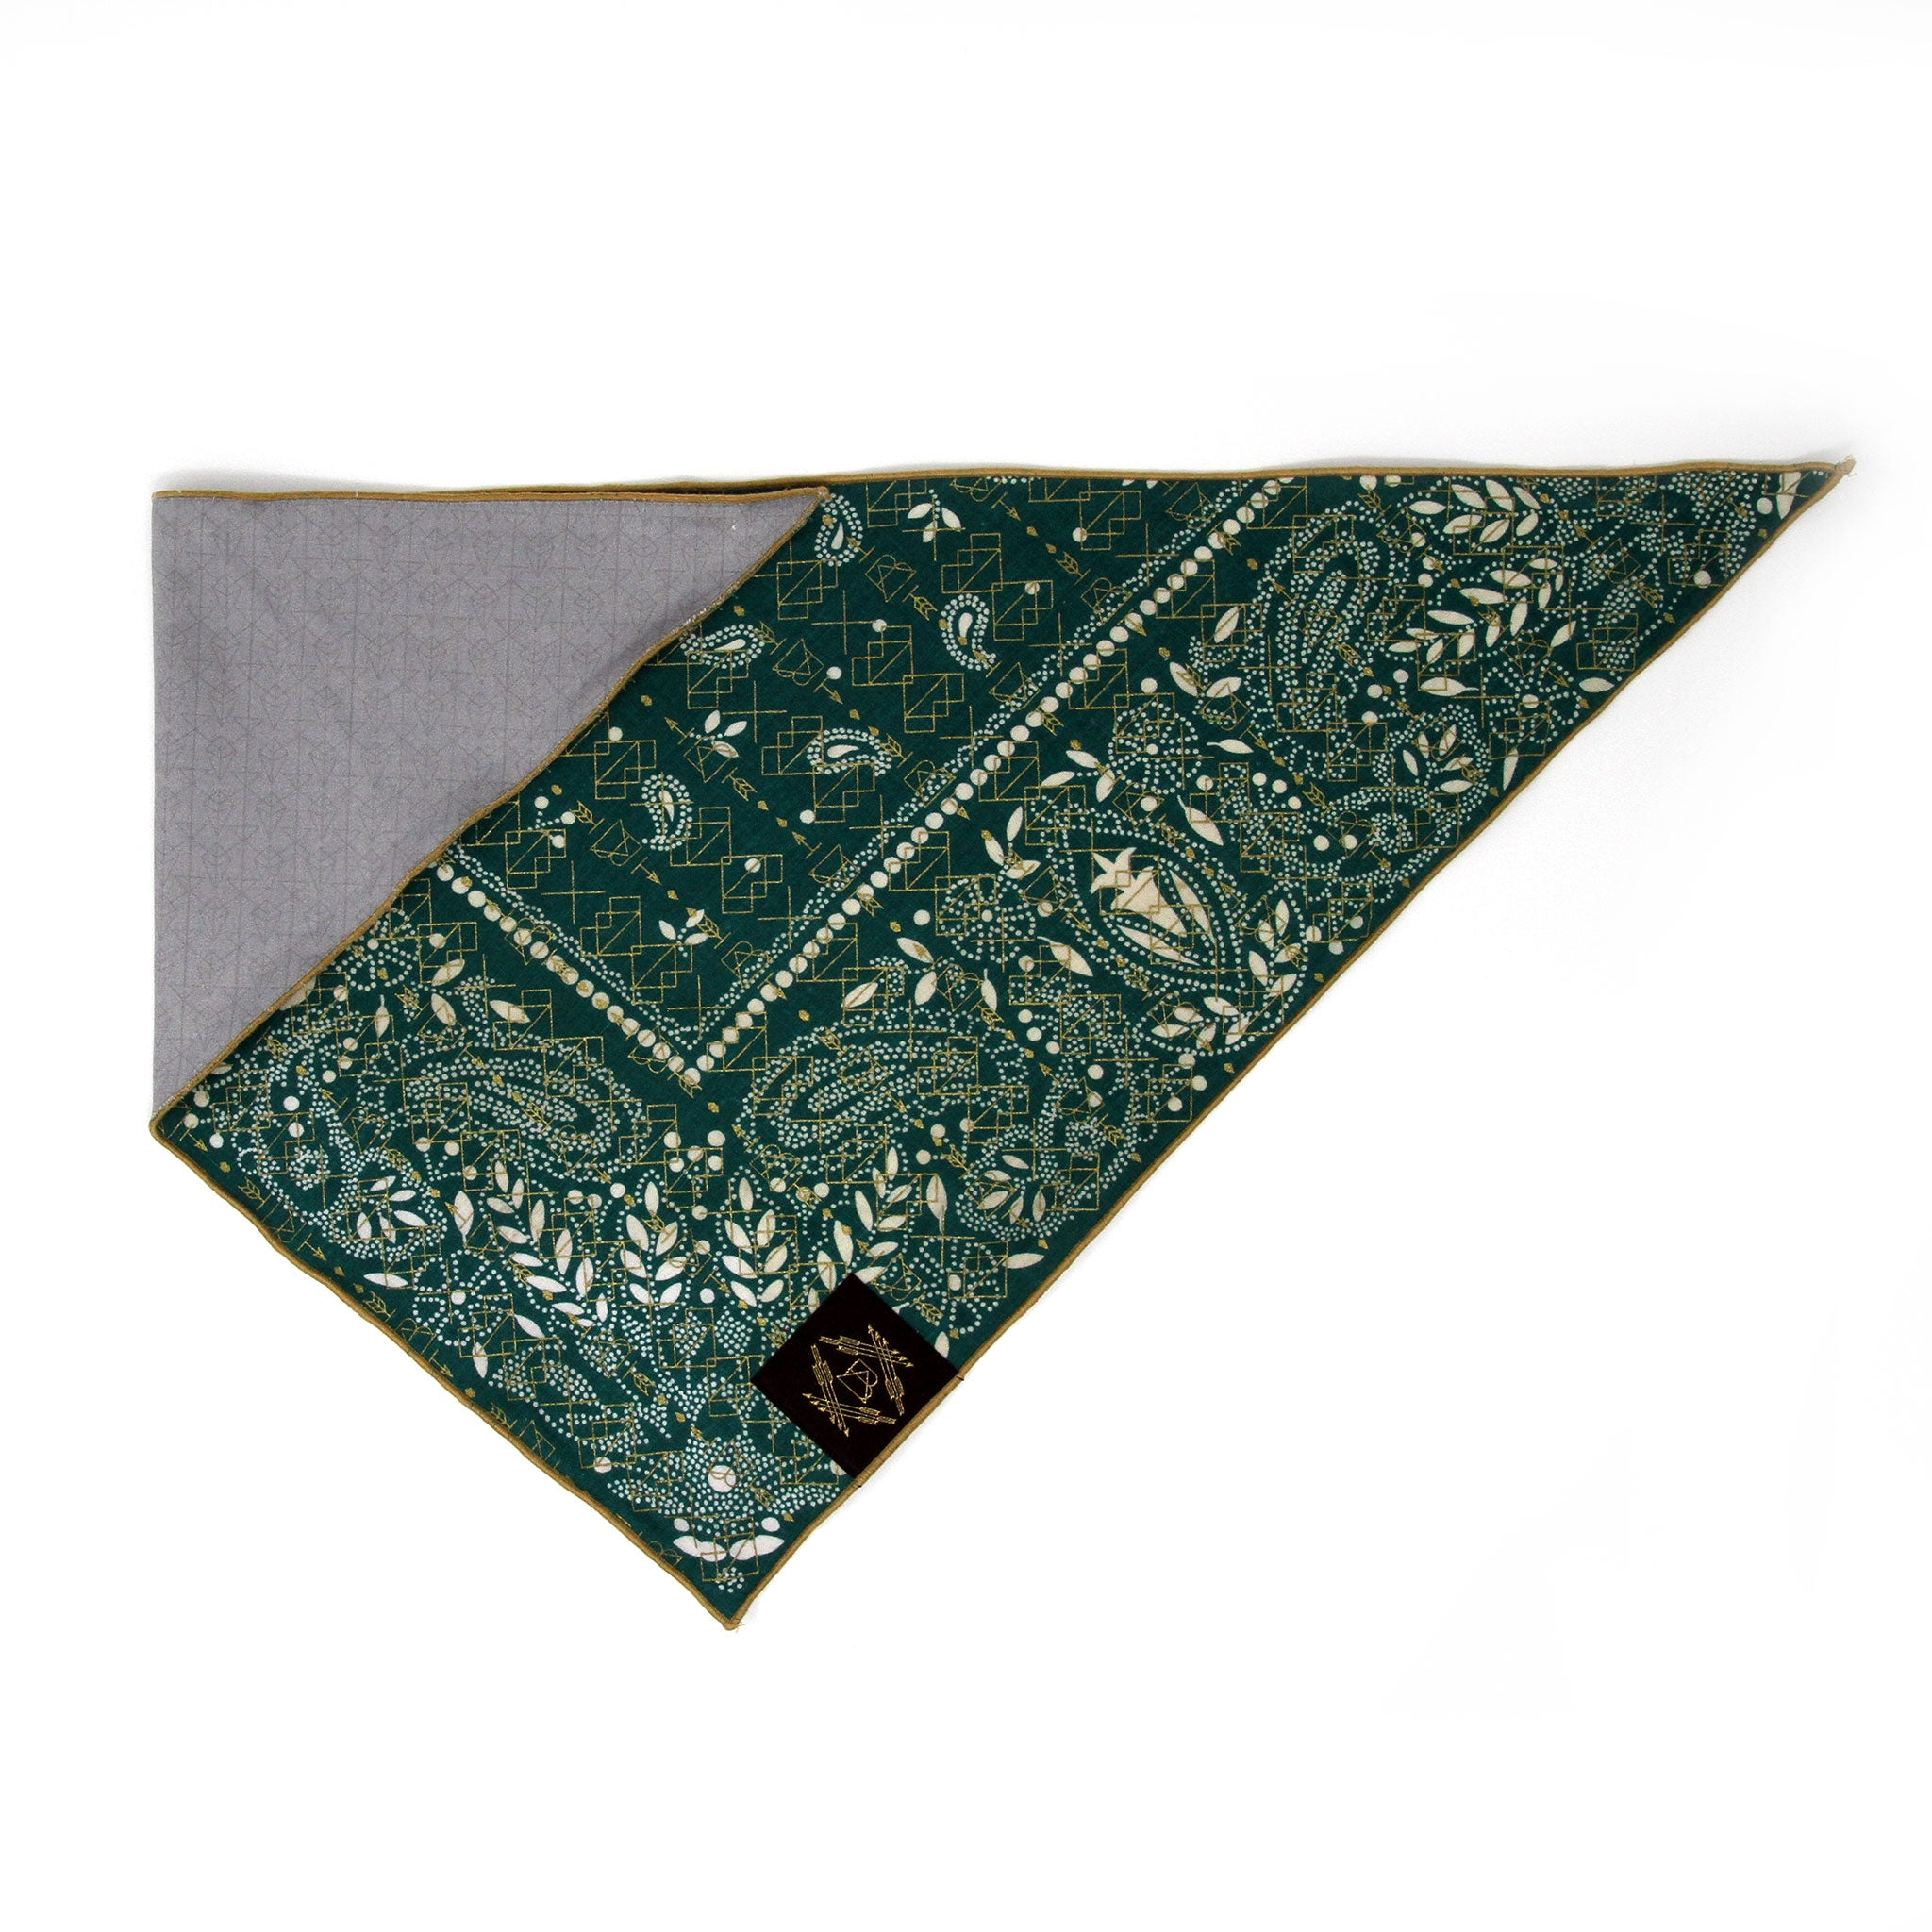 Emerald Green Vintage Dog Bandana with Metallic Gold Screen Printing